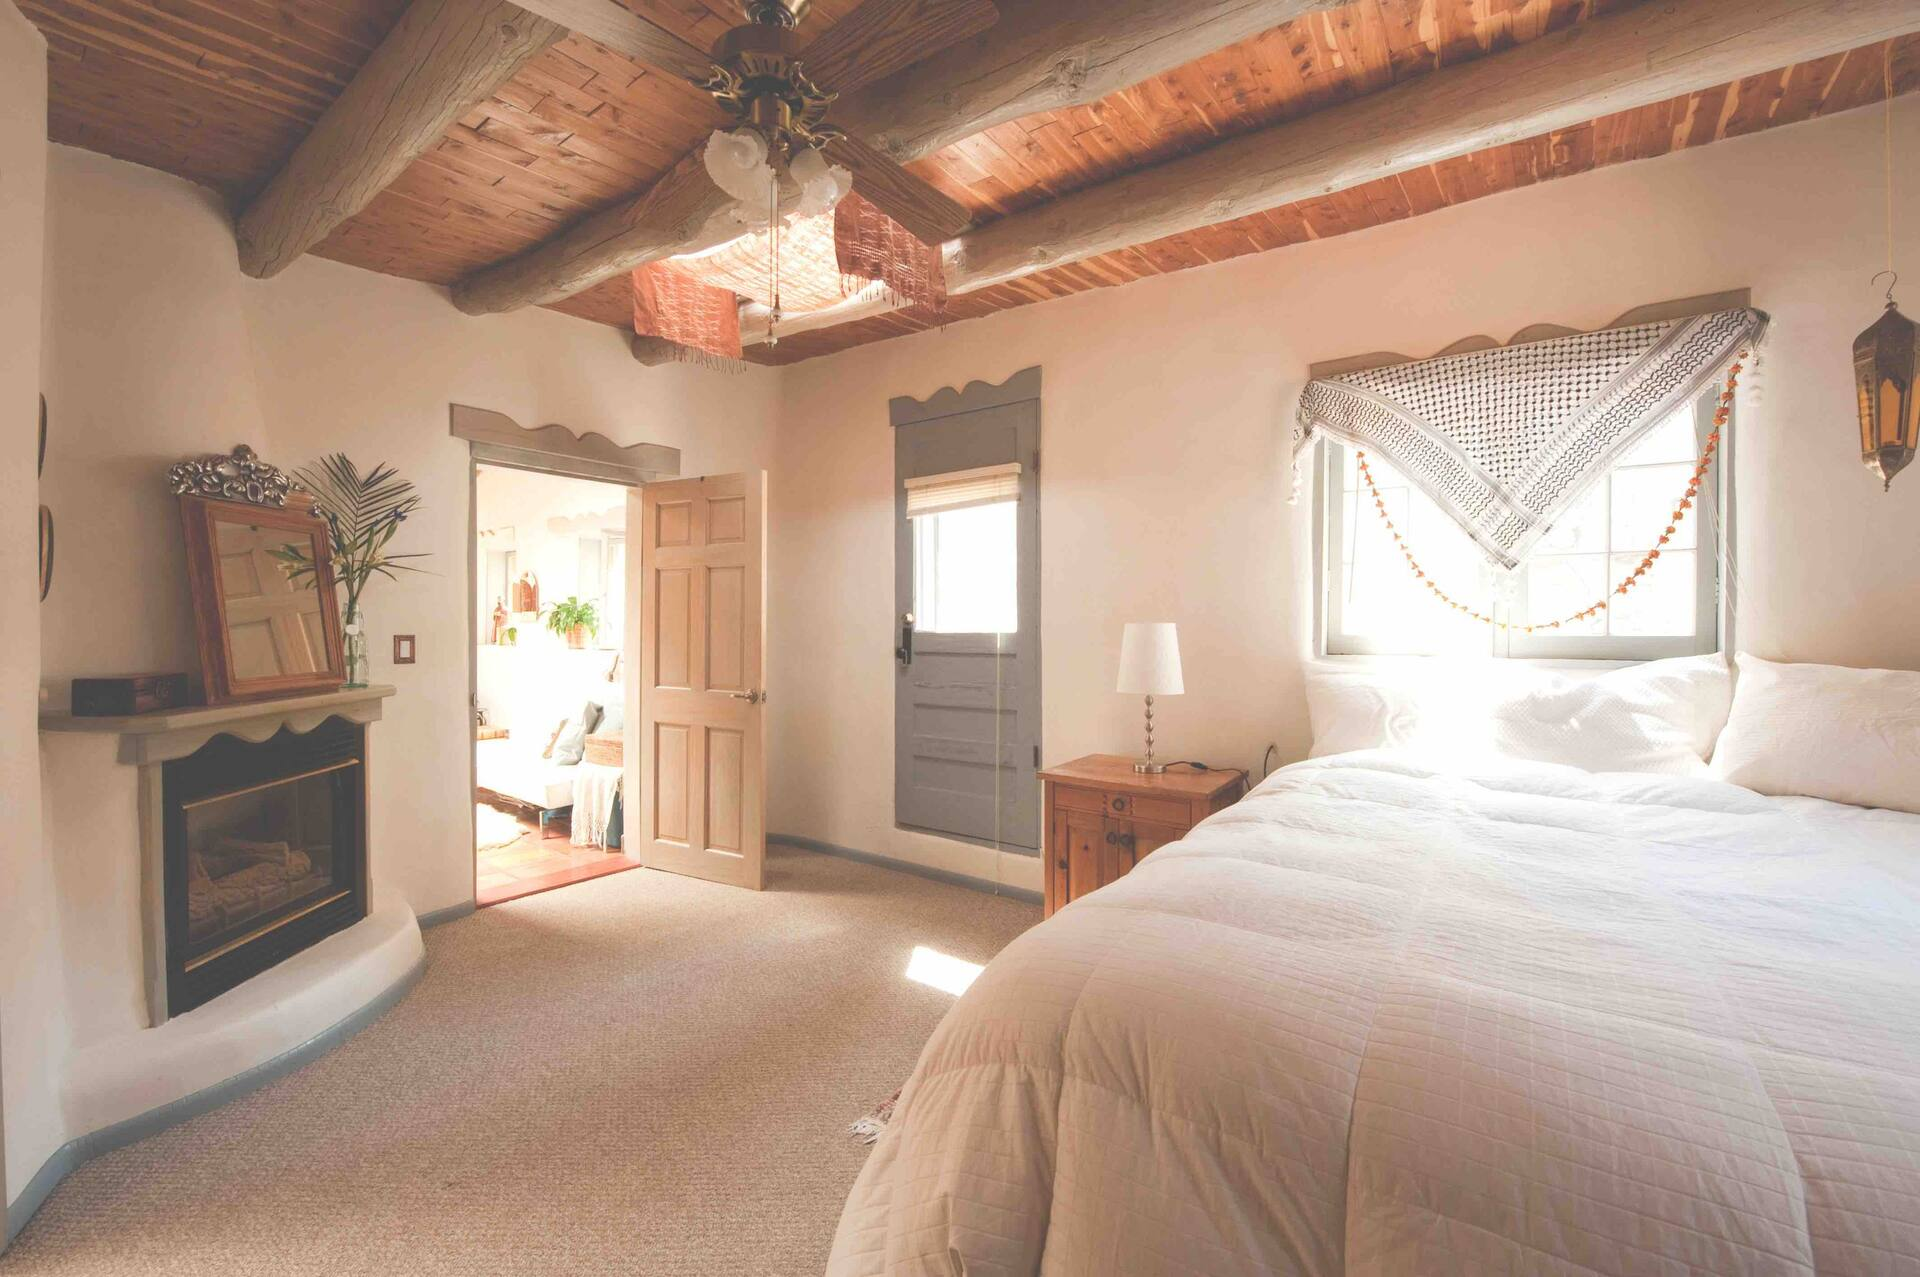 the Besos Adobe Airbnb in New Mexico